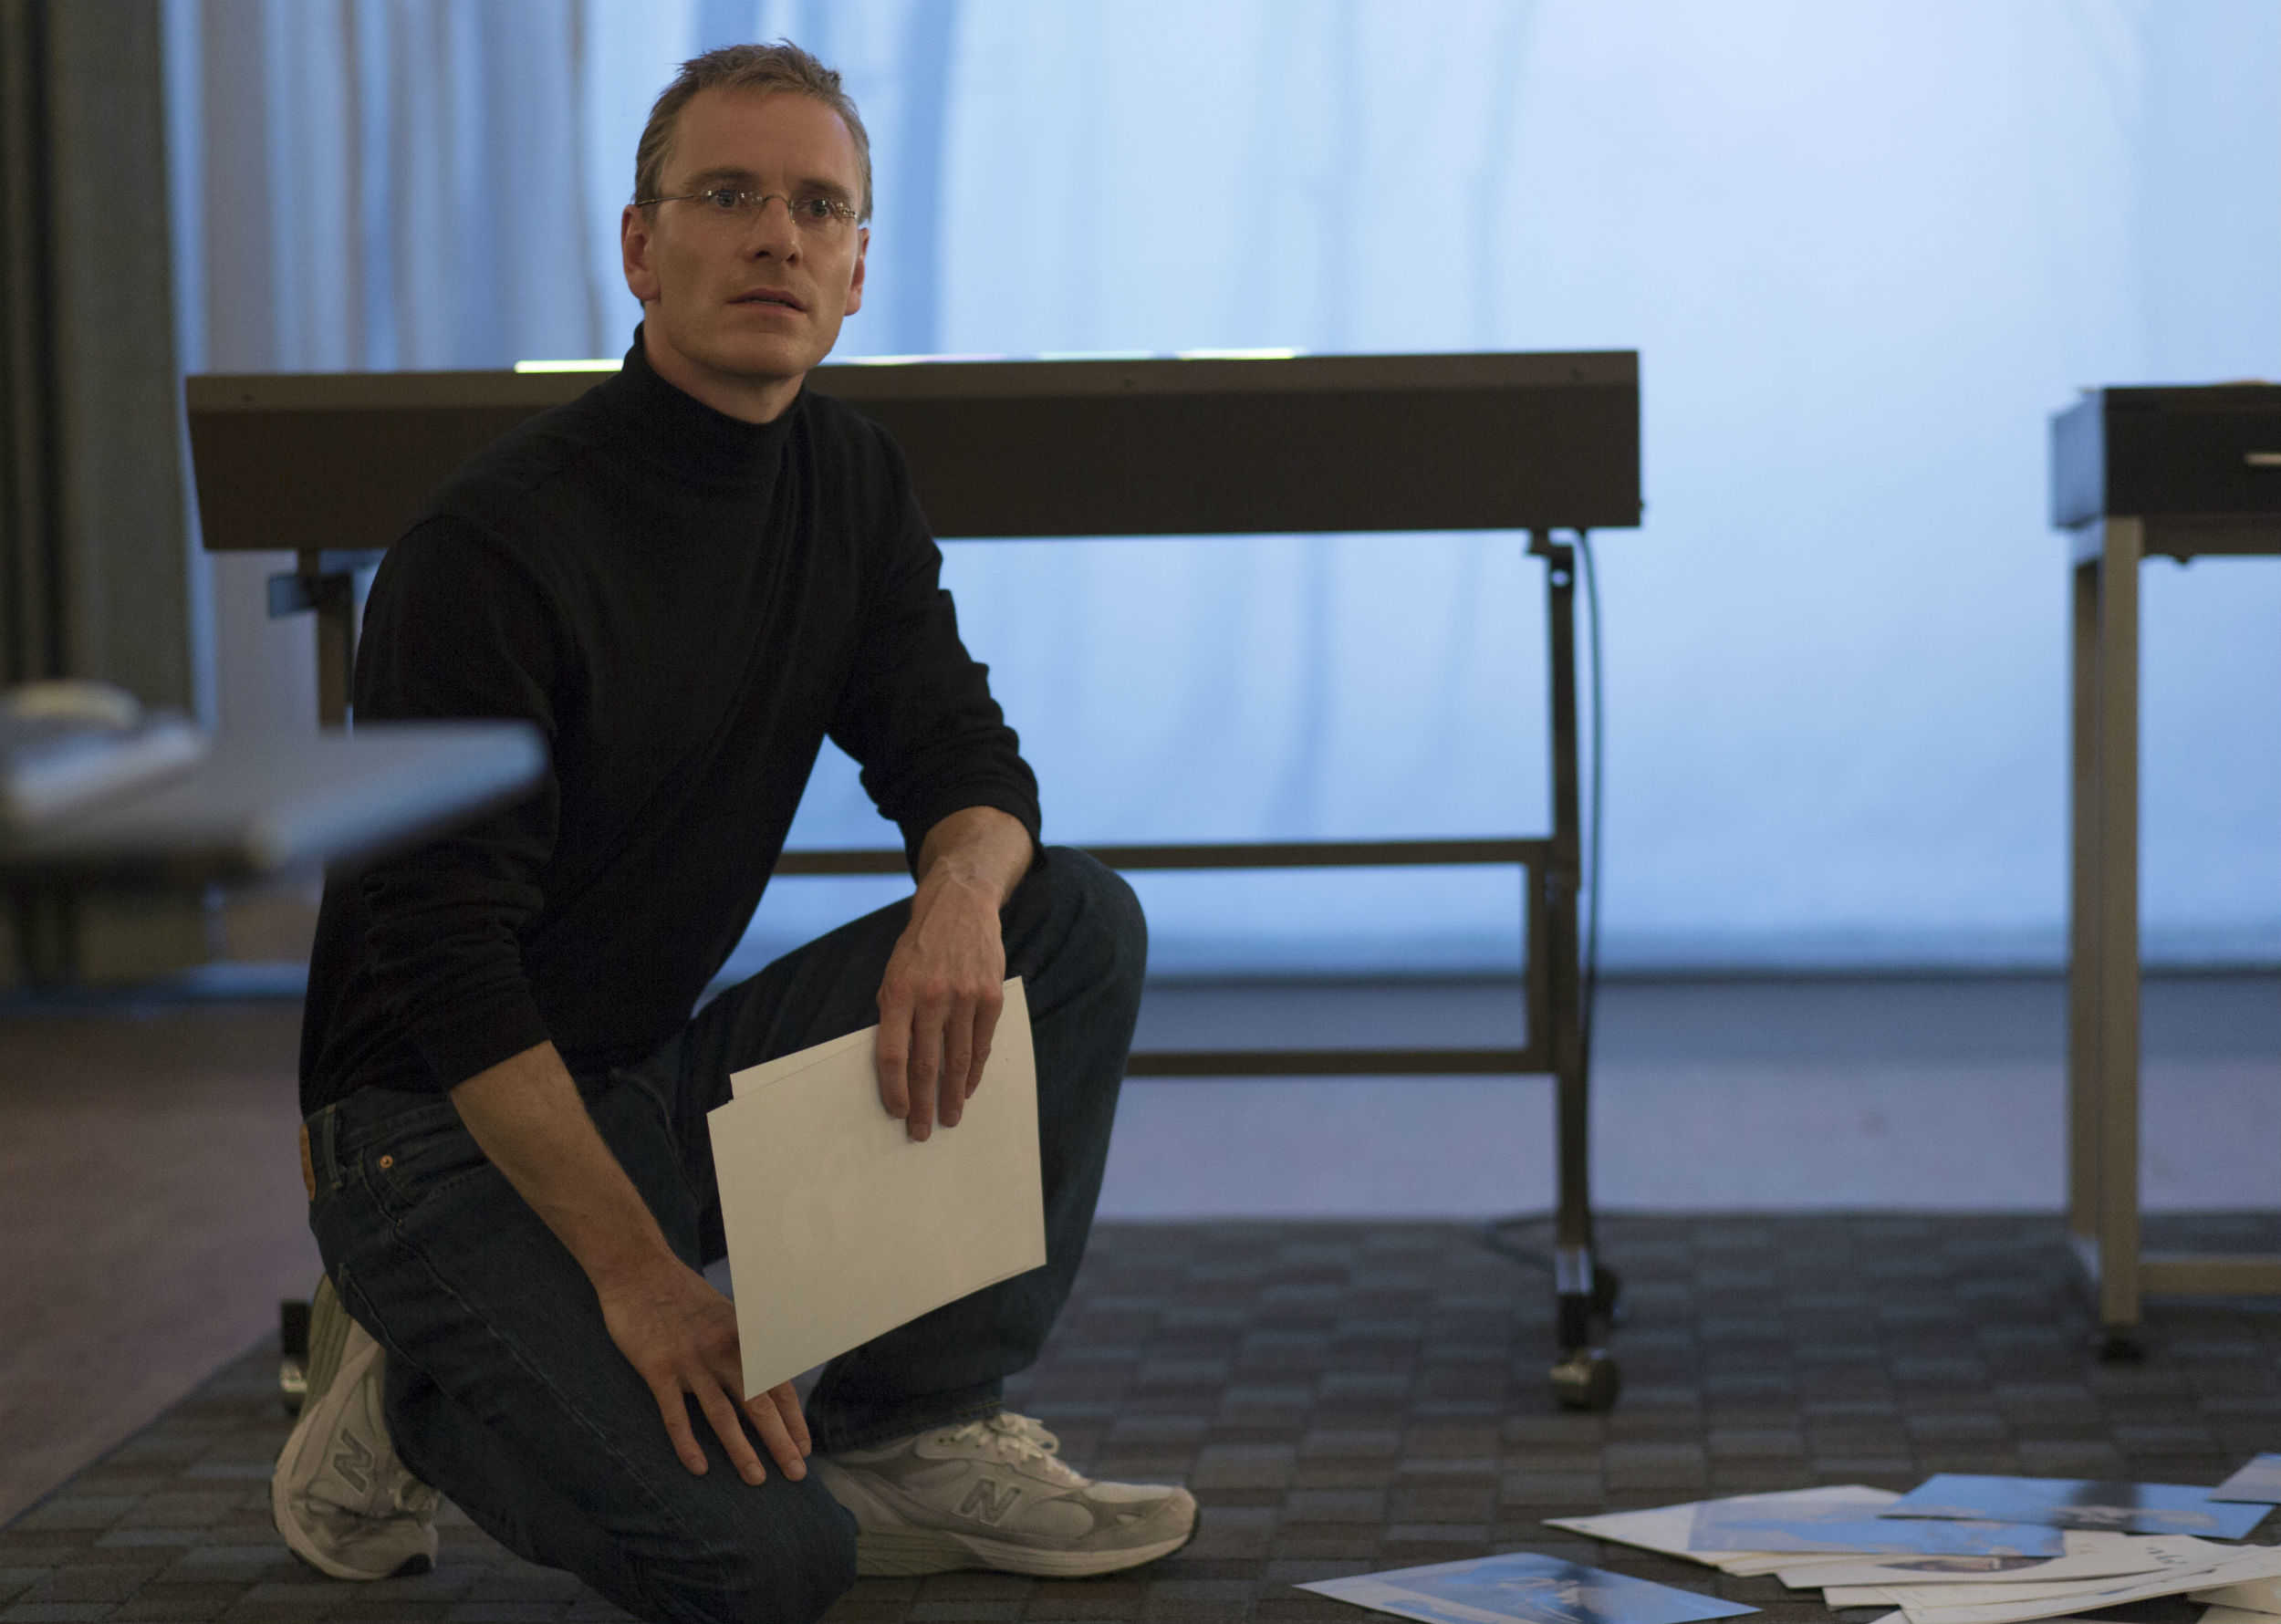 Aaron Sorkin's Steve Jobs movie is coming to Netflix